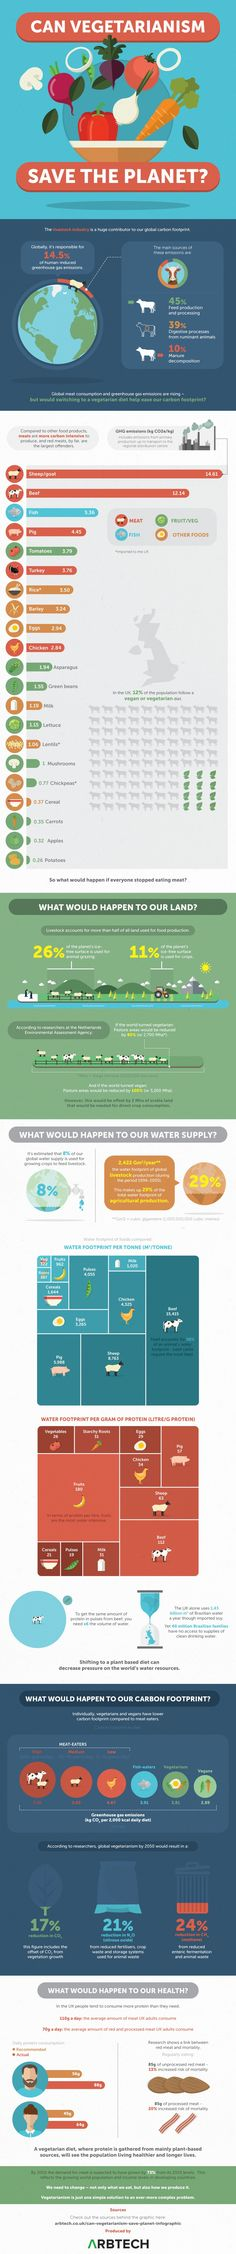 Can Vegetarianism Save the Planet Infographic